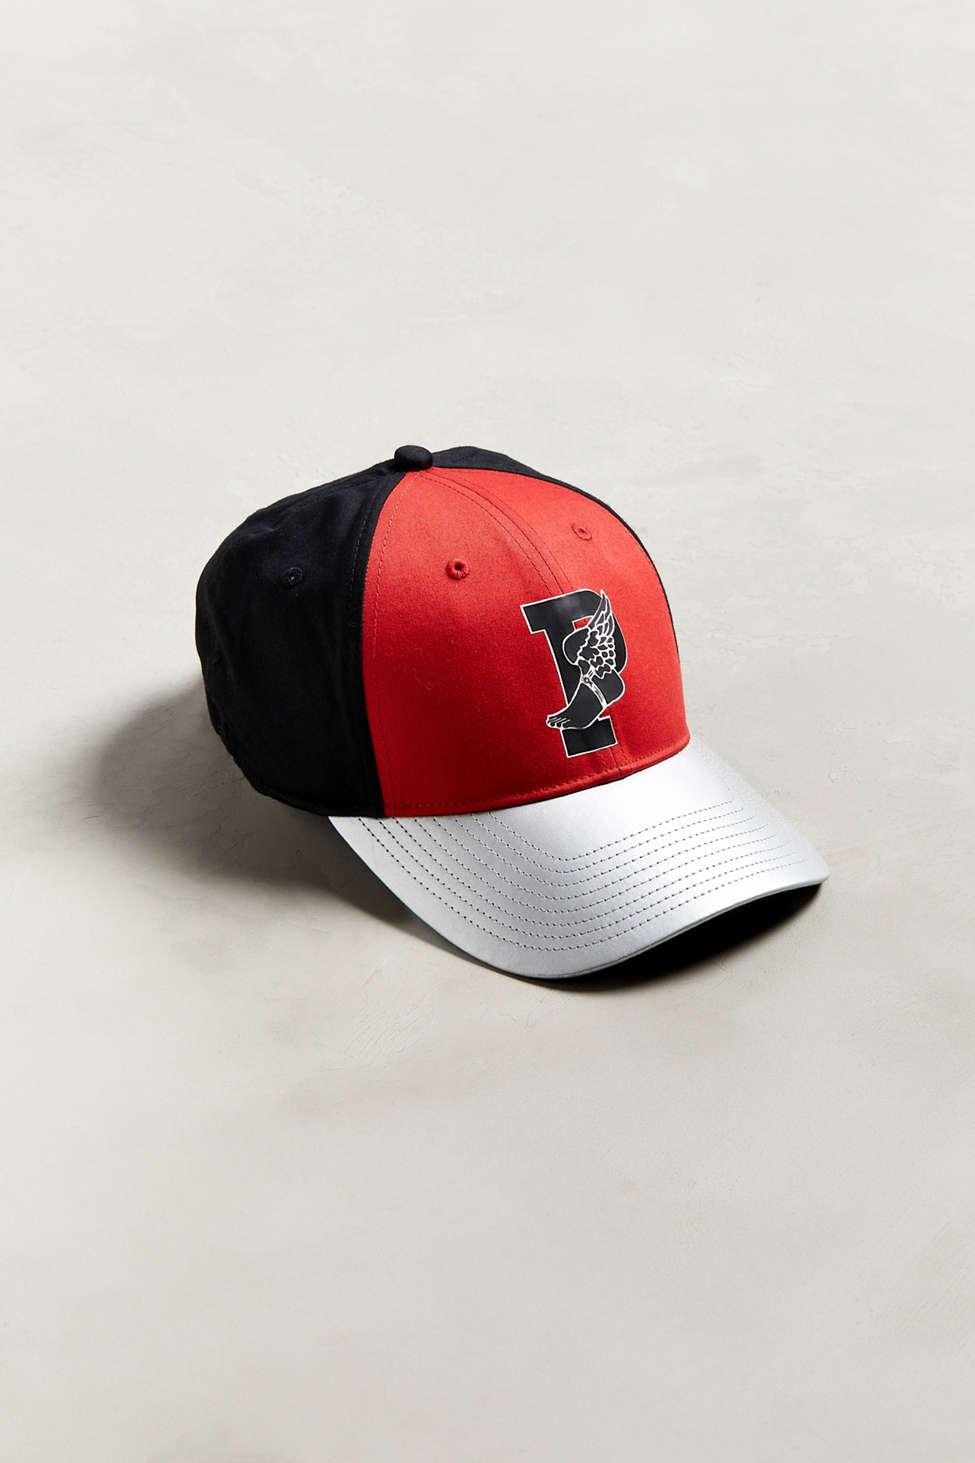 aab80cbfe97 Lyst - Polo Ralph Lauren P-wing Classic Sport Baseball Hat in Red ...